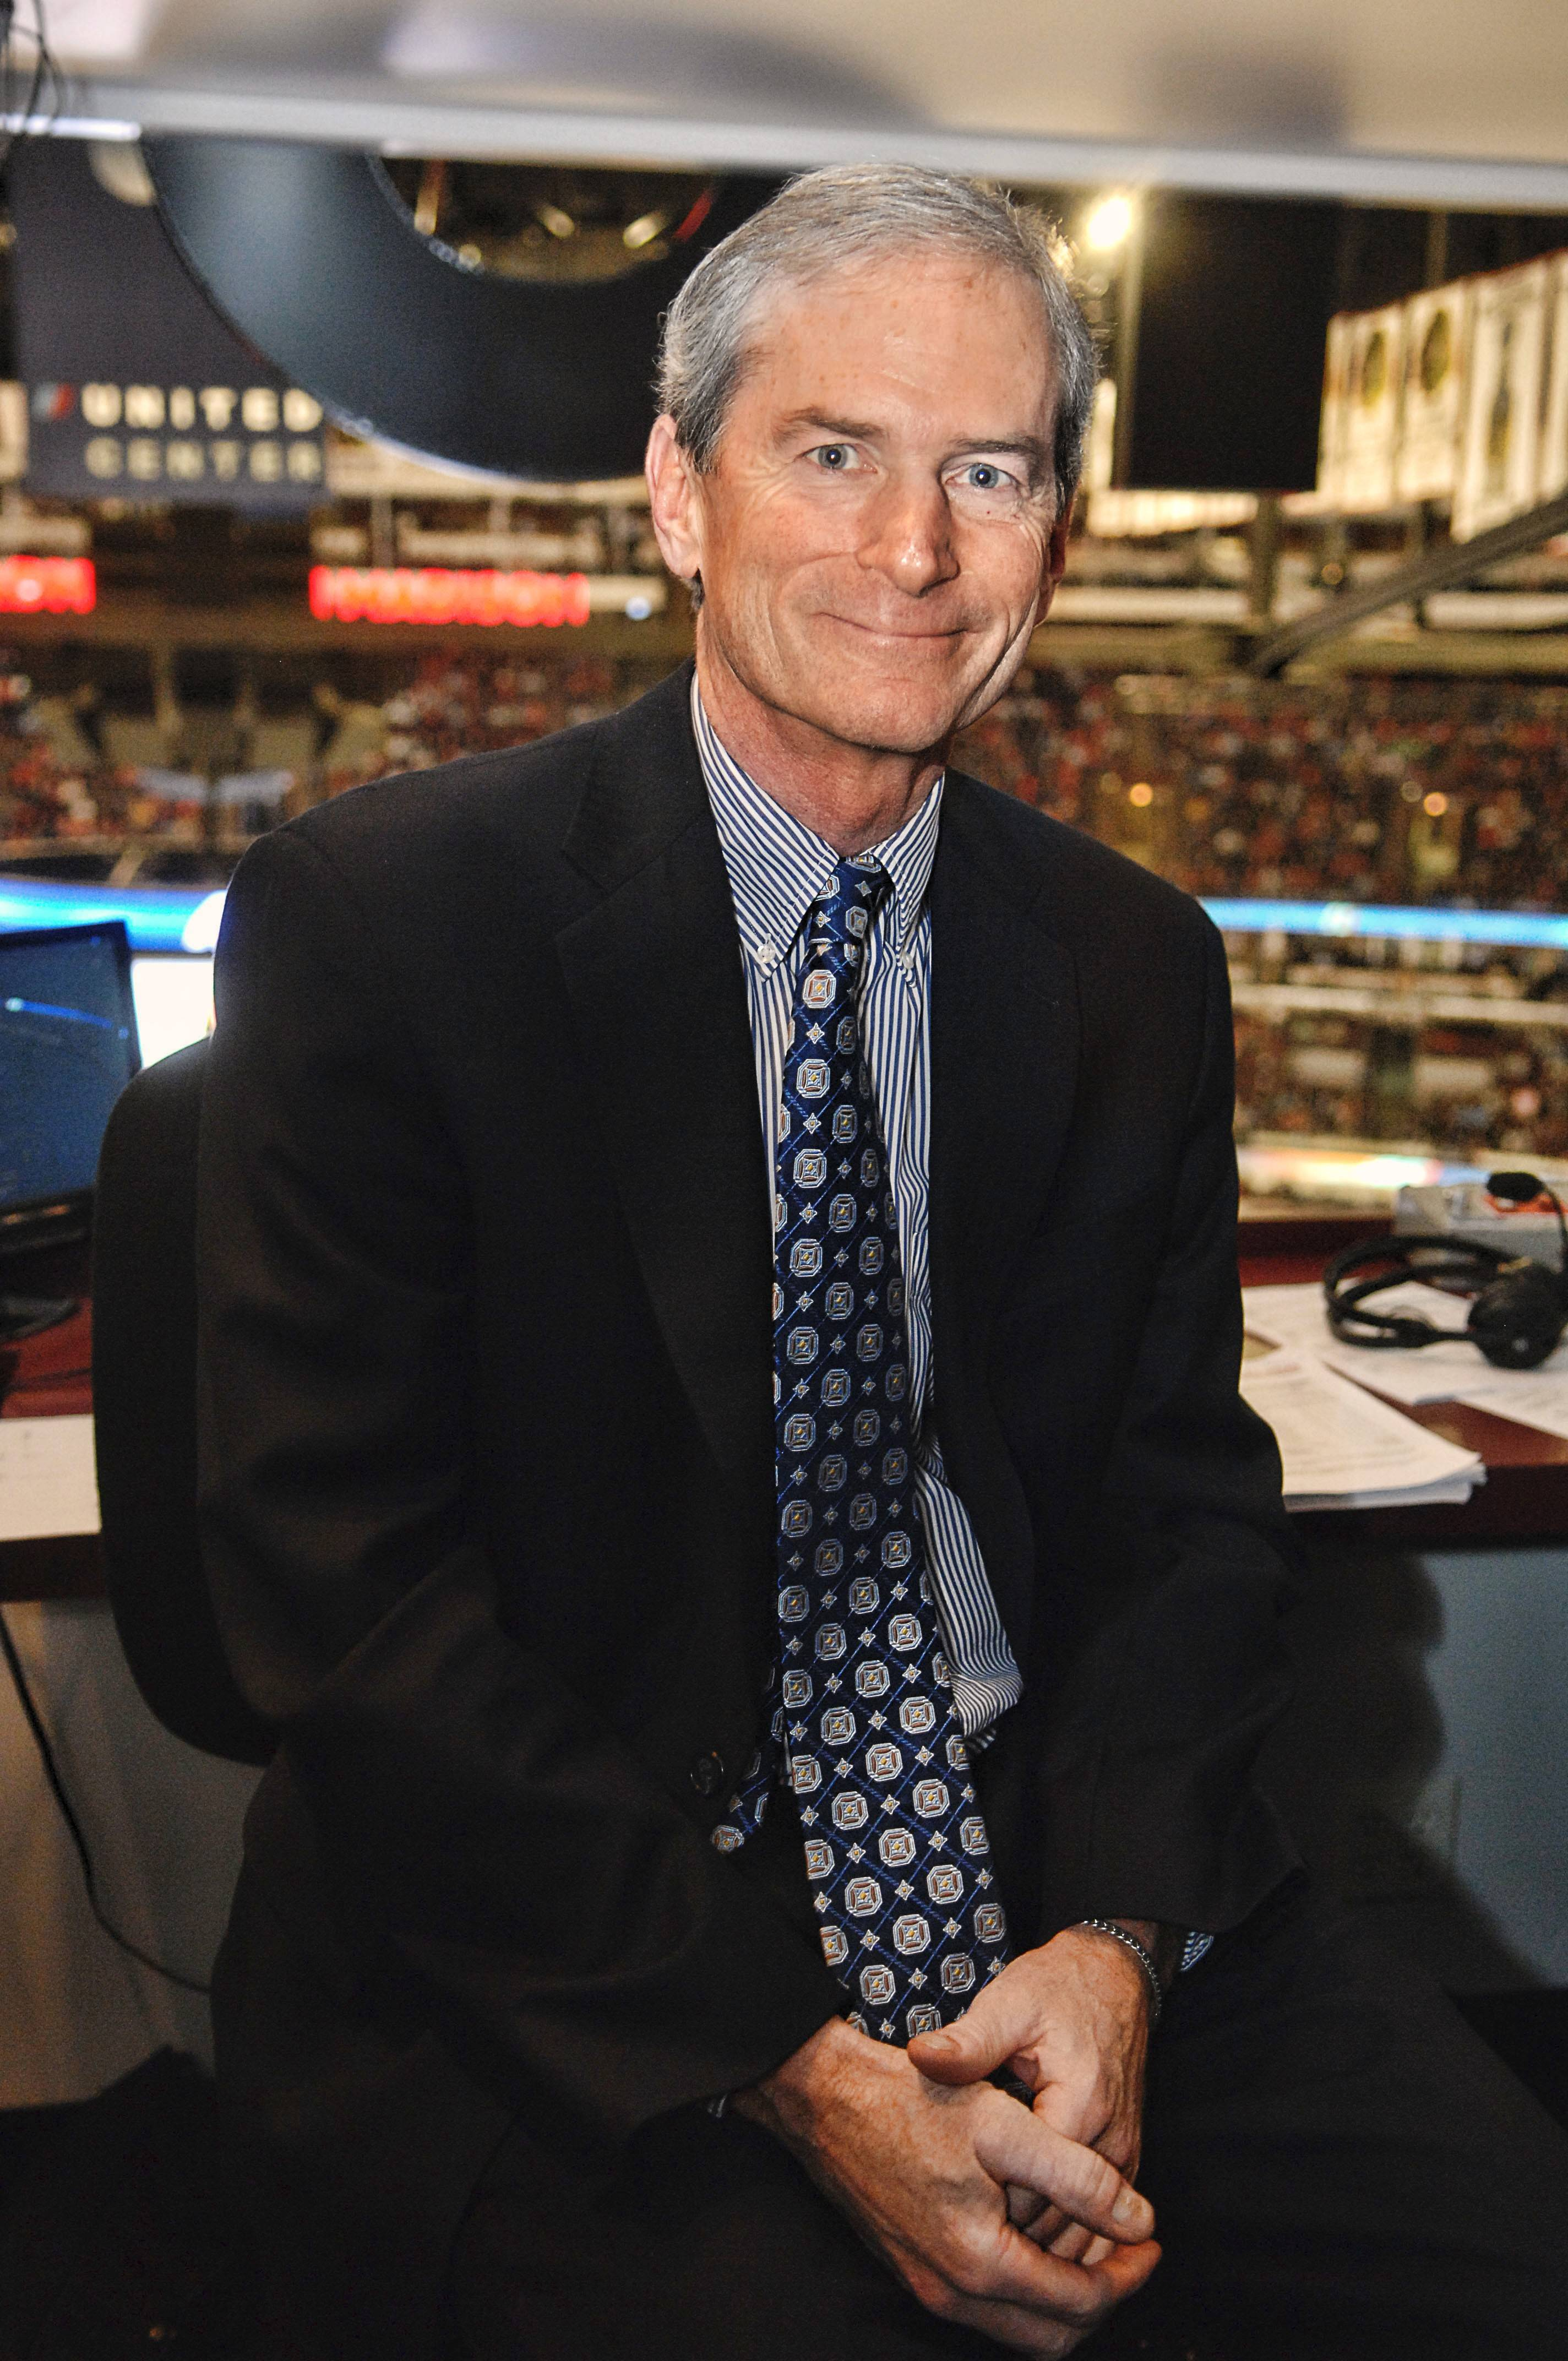 Veteran broadcaster Pat Foley, who has spent 31 seasons with the Blackhawks, has been selected as the Foster Hewitt Memorial Award by the NHL Broadcasters Association and the Hockey Hall of Fame.